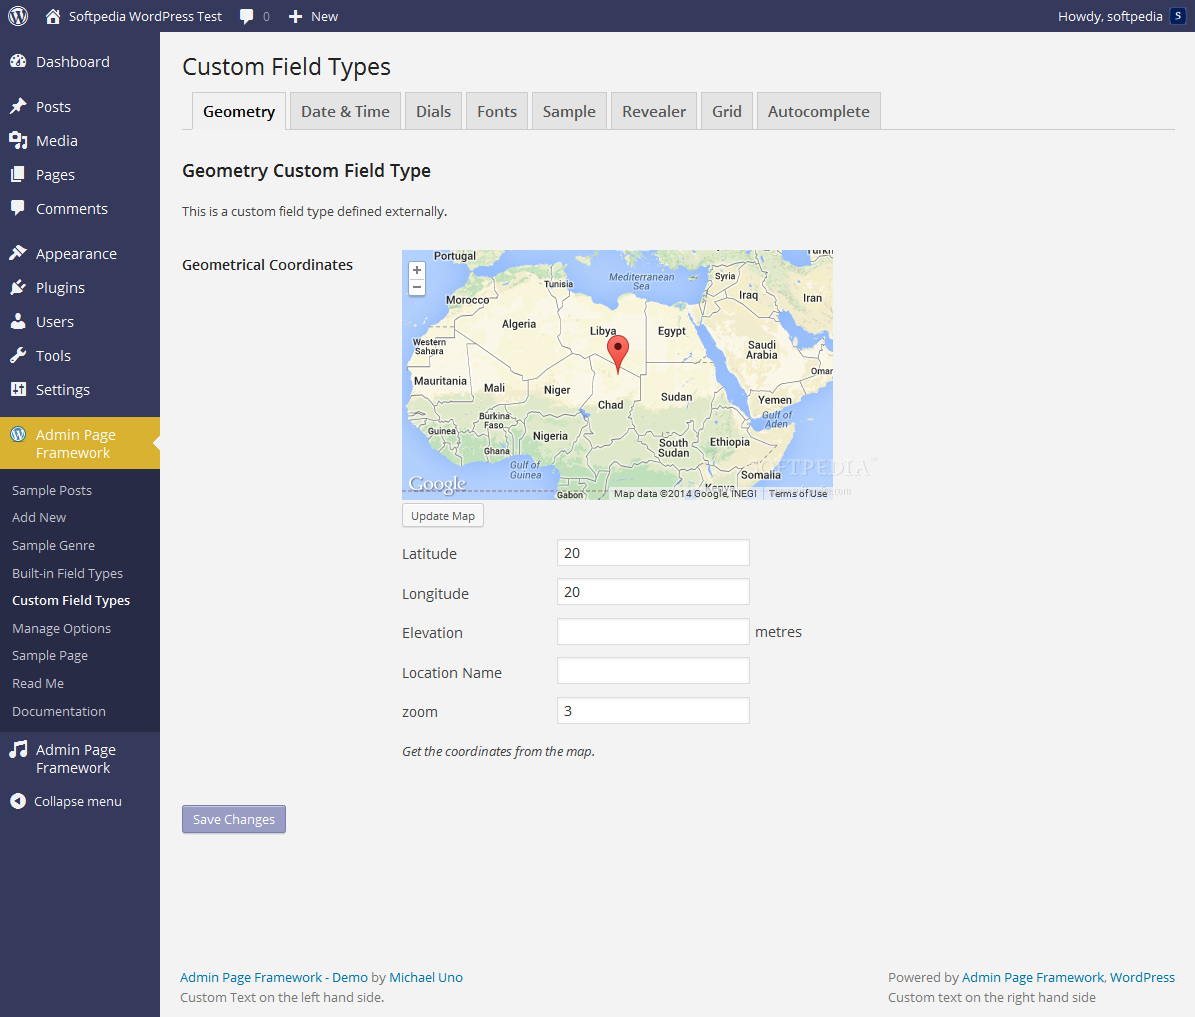 Admin Page Framework - Customized field types and various layout options are also supported